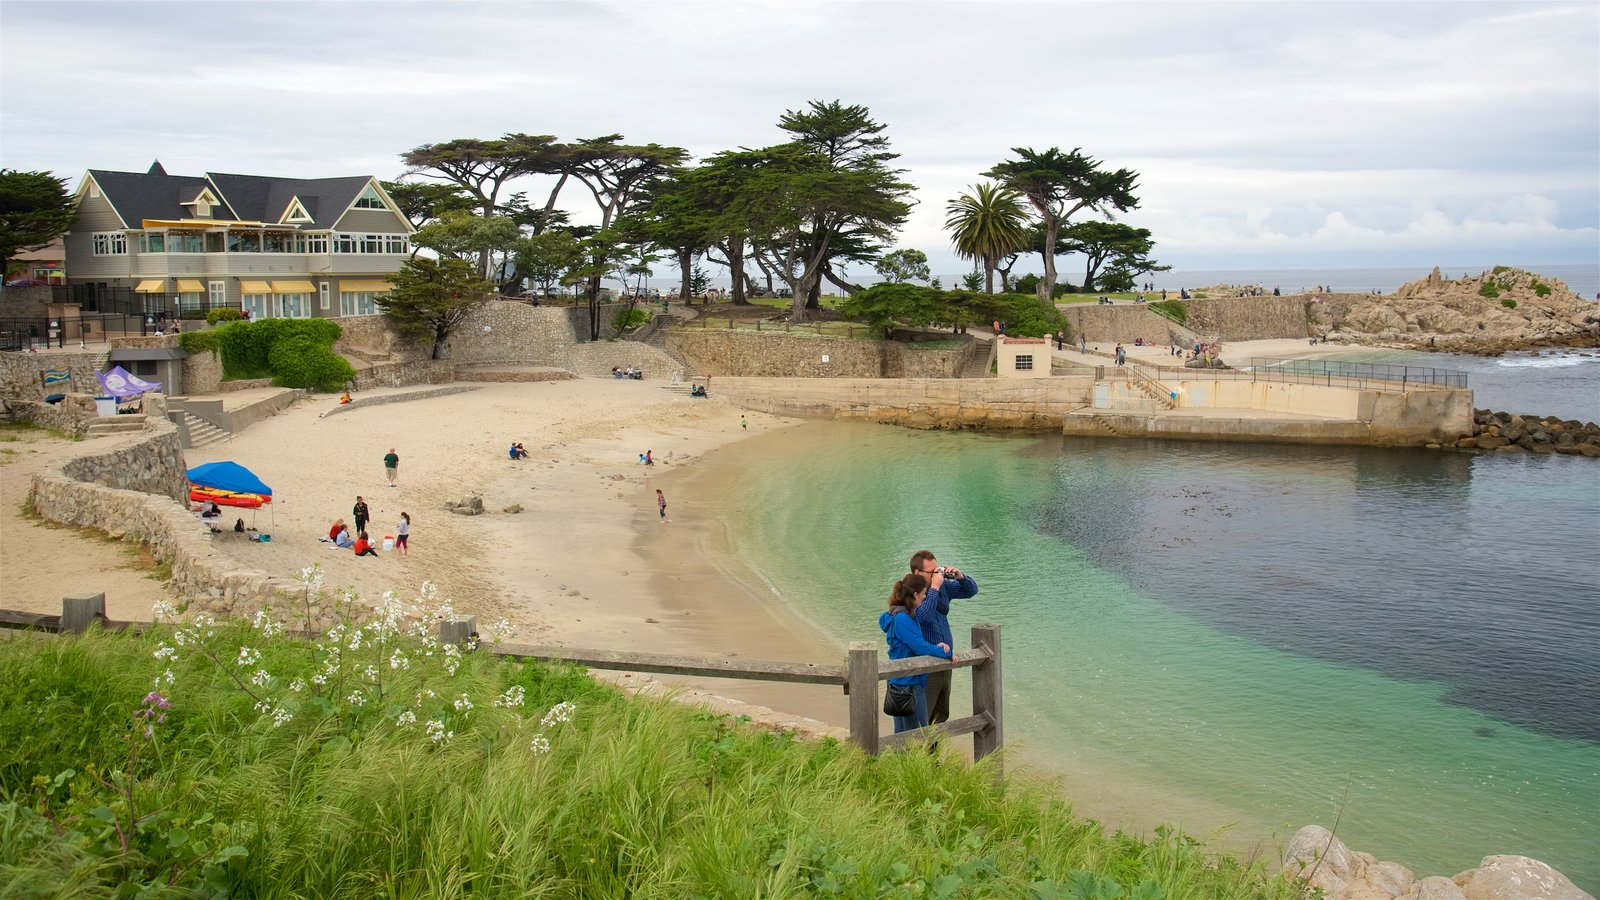 Pacific Grove Which Includes A Beach And General Coastal Views As Well